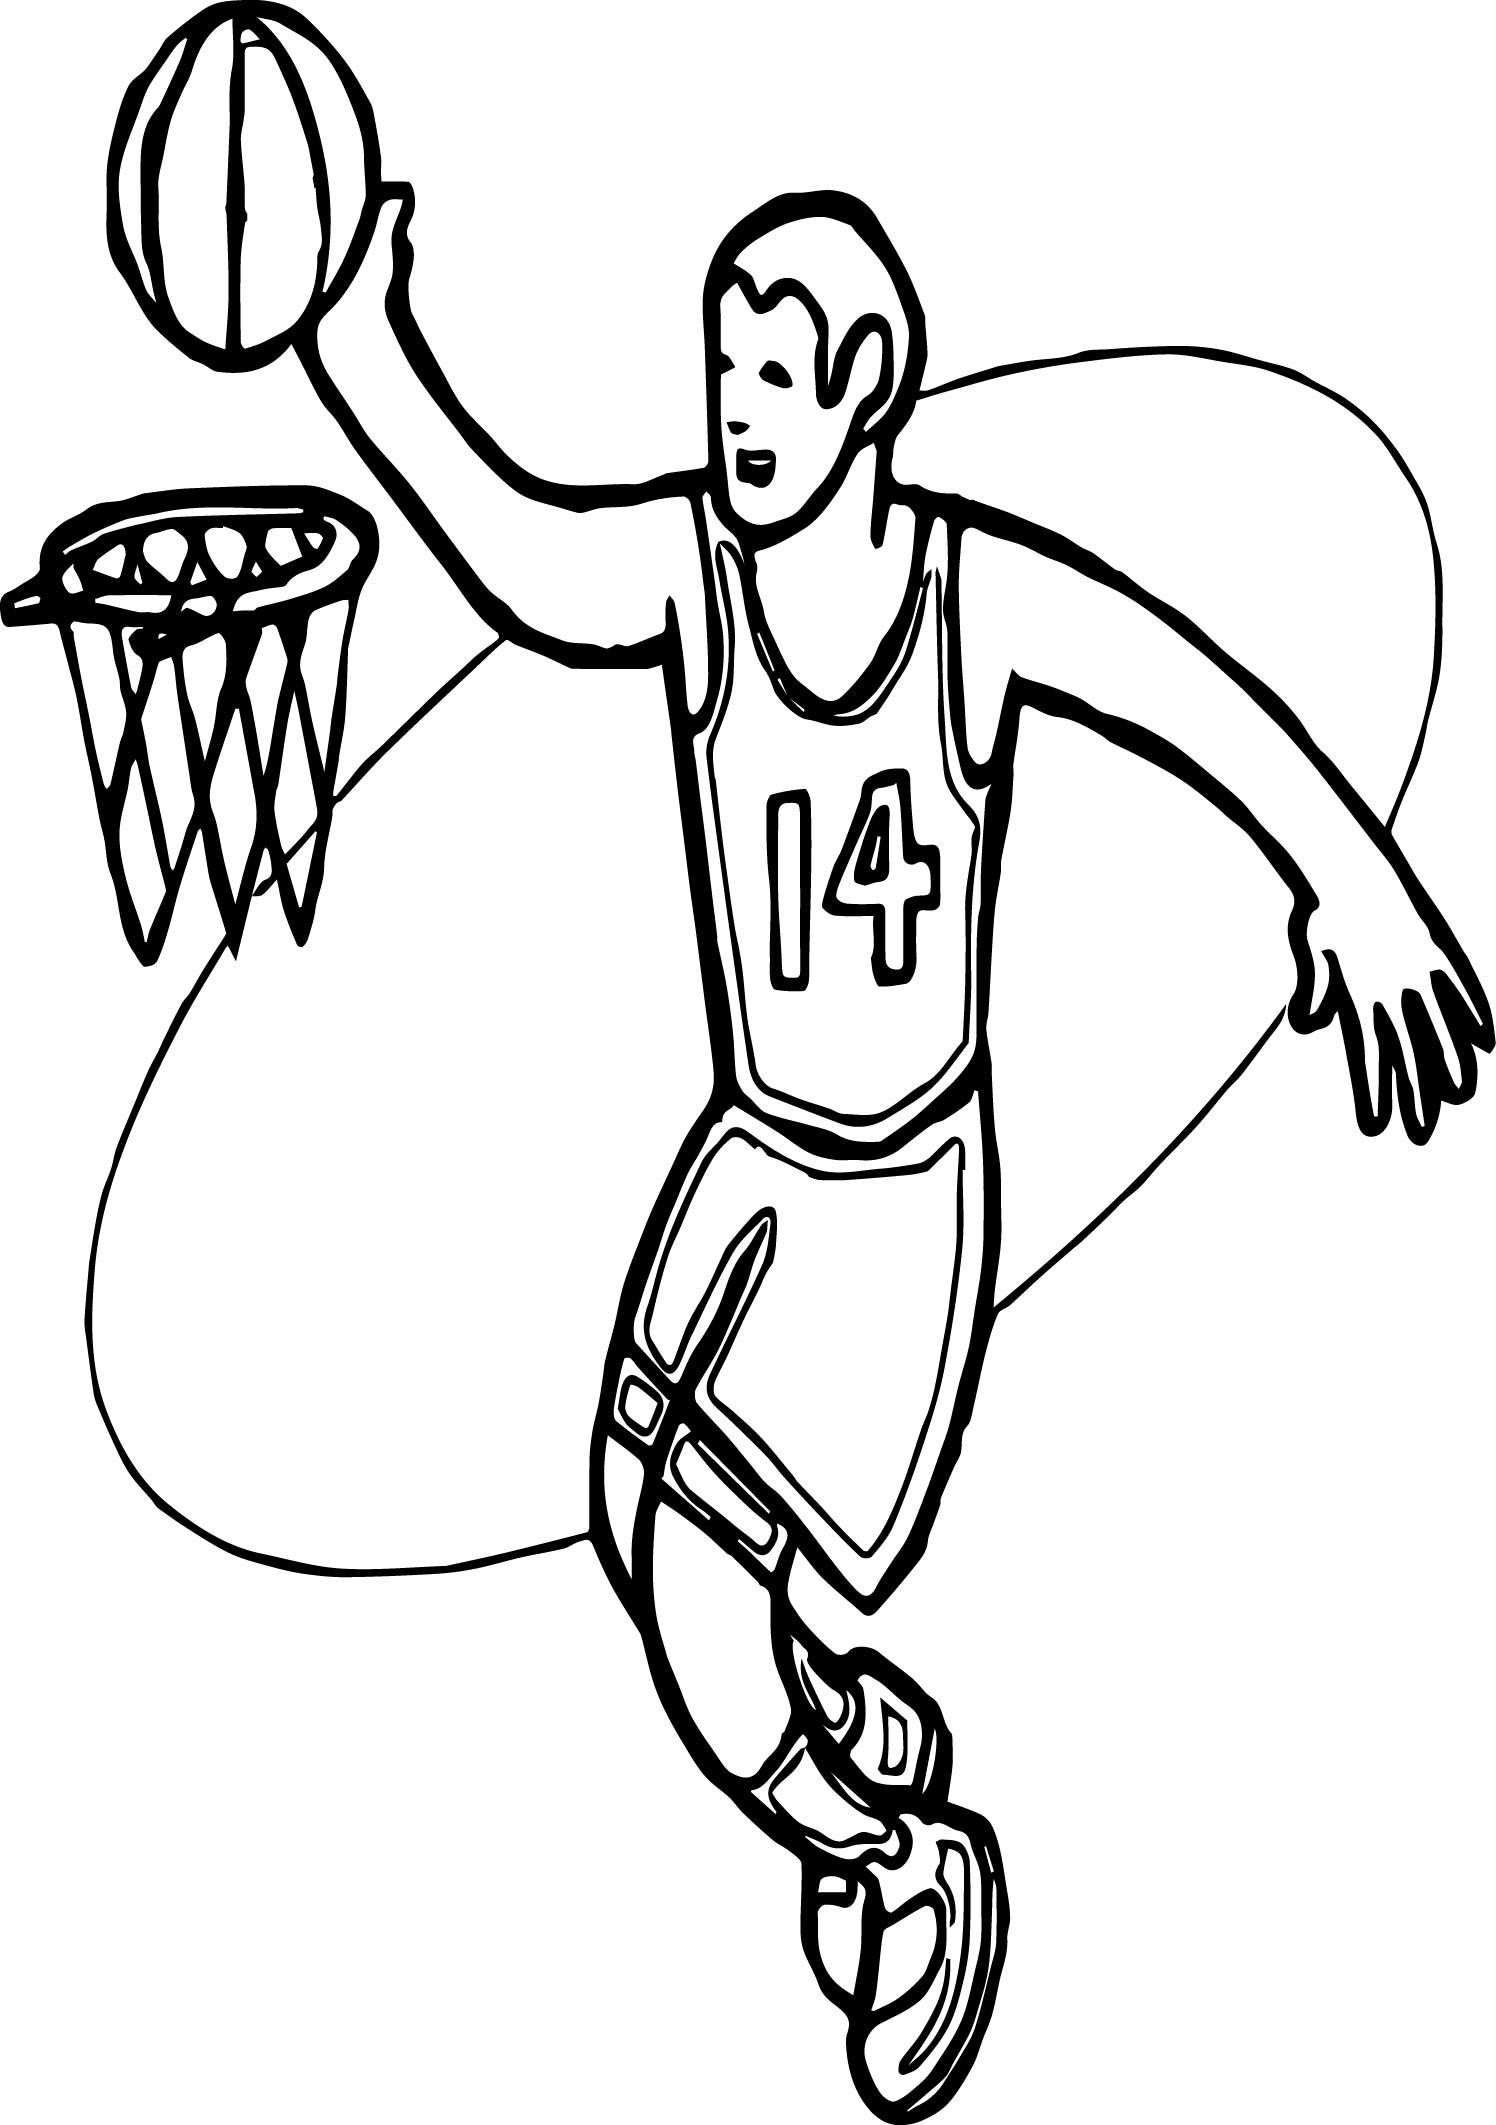 Basket And Man Playing Basketball Coloring Page ...